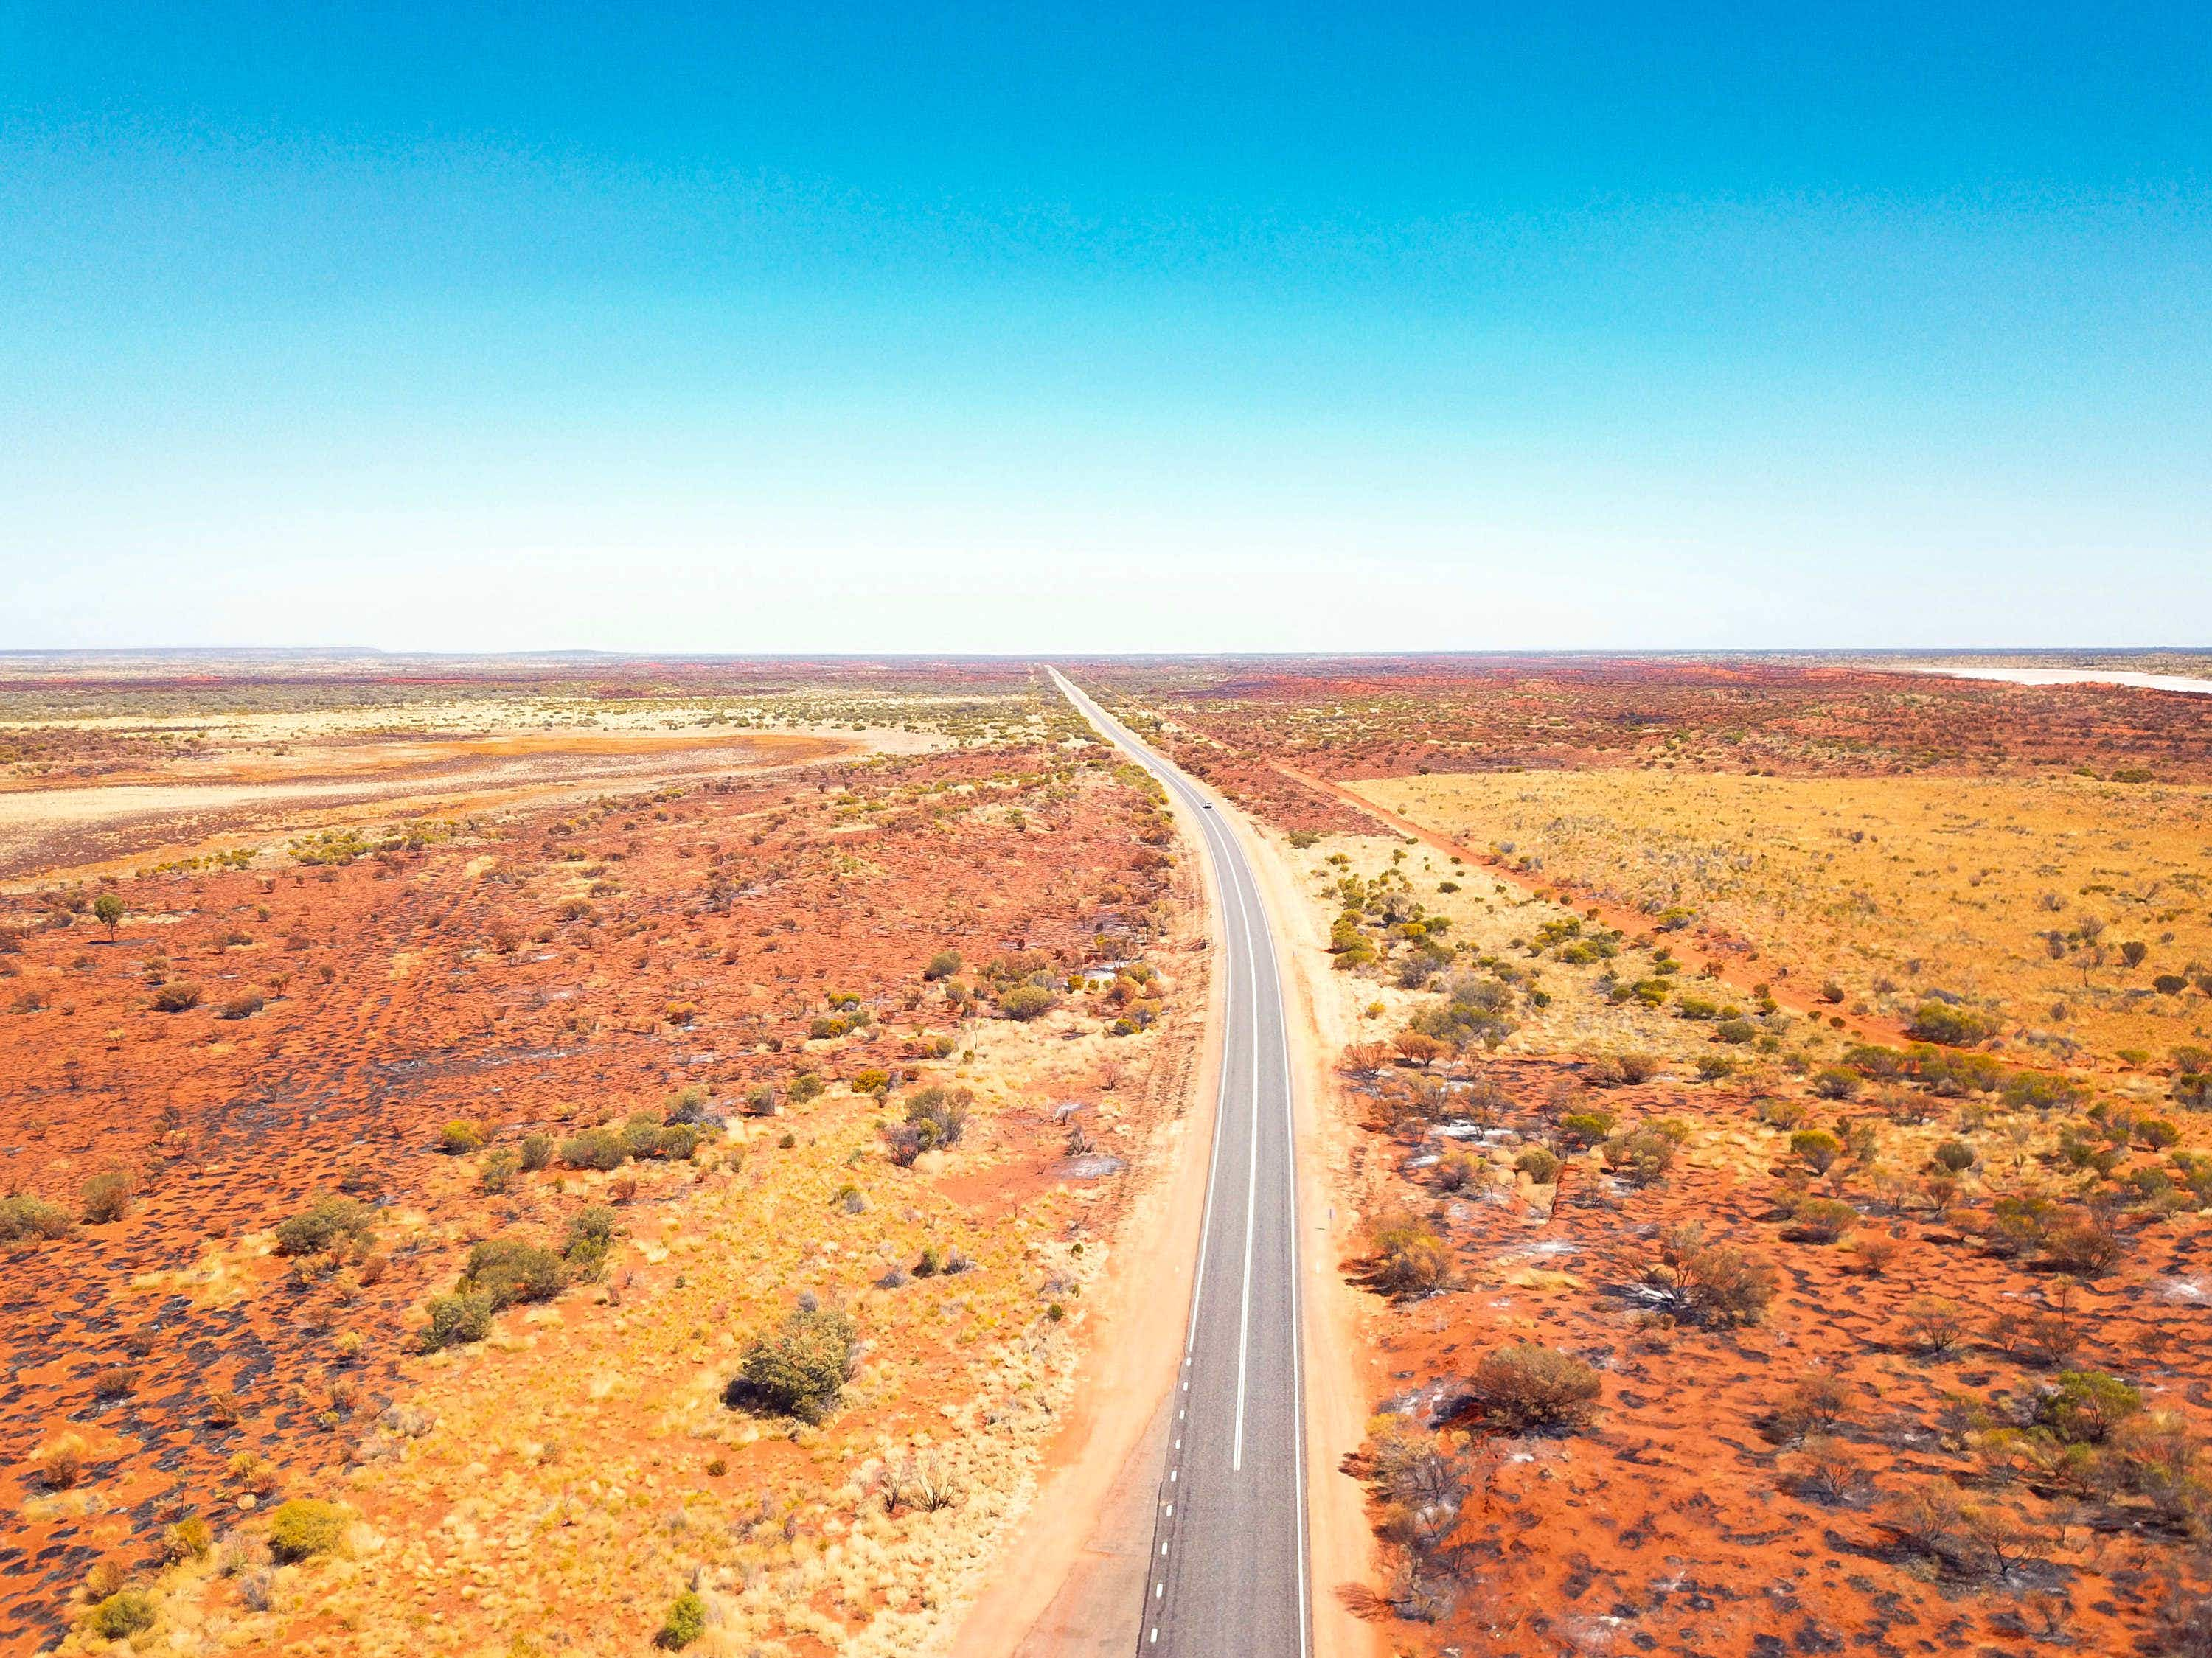 US travellers going to Australia can claim themselves a free flight to the Outback